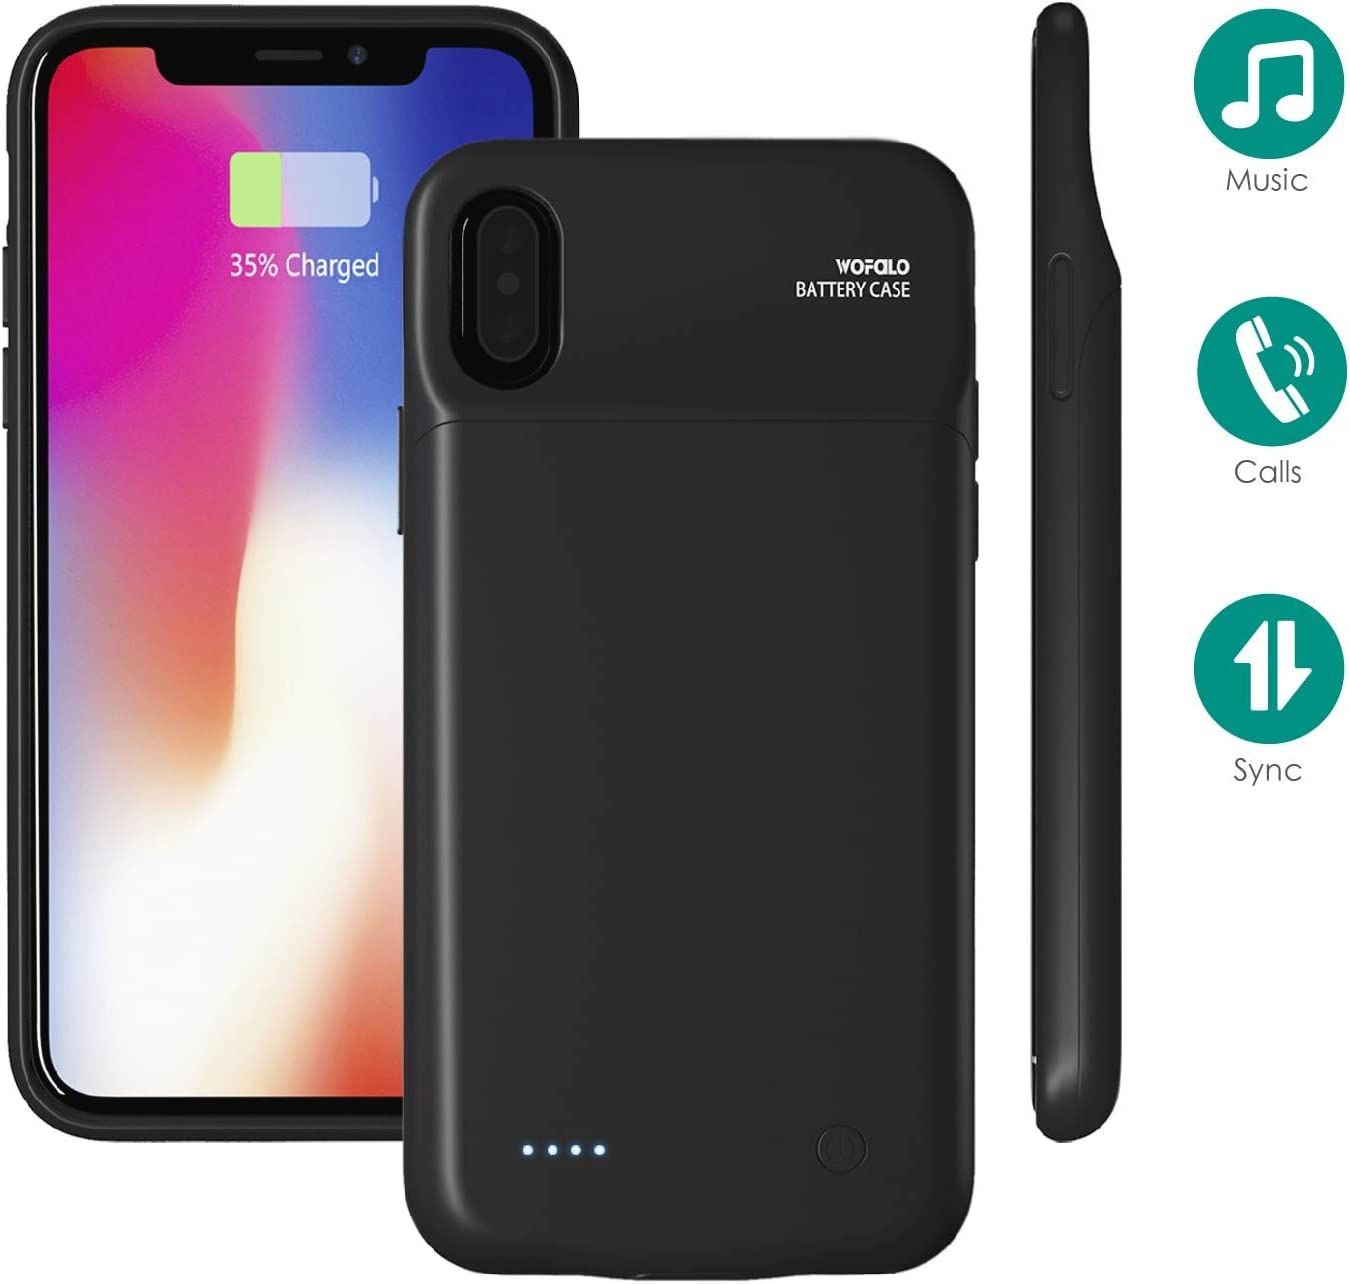 iPhone X Battery Case, Wofalo 3200mAh Portable Rechargeable Extended Backup Battery Charging Juice Pack,External Power Bank,Protective Case Cover for